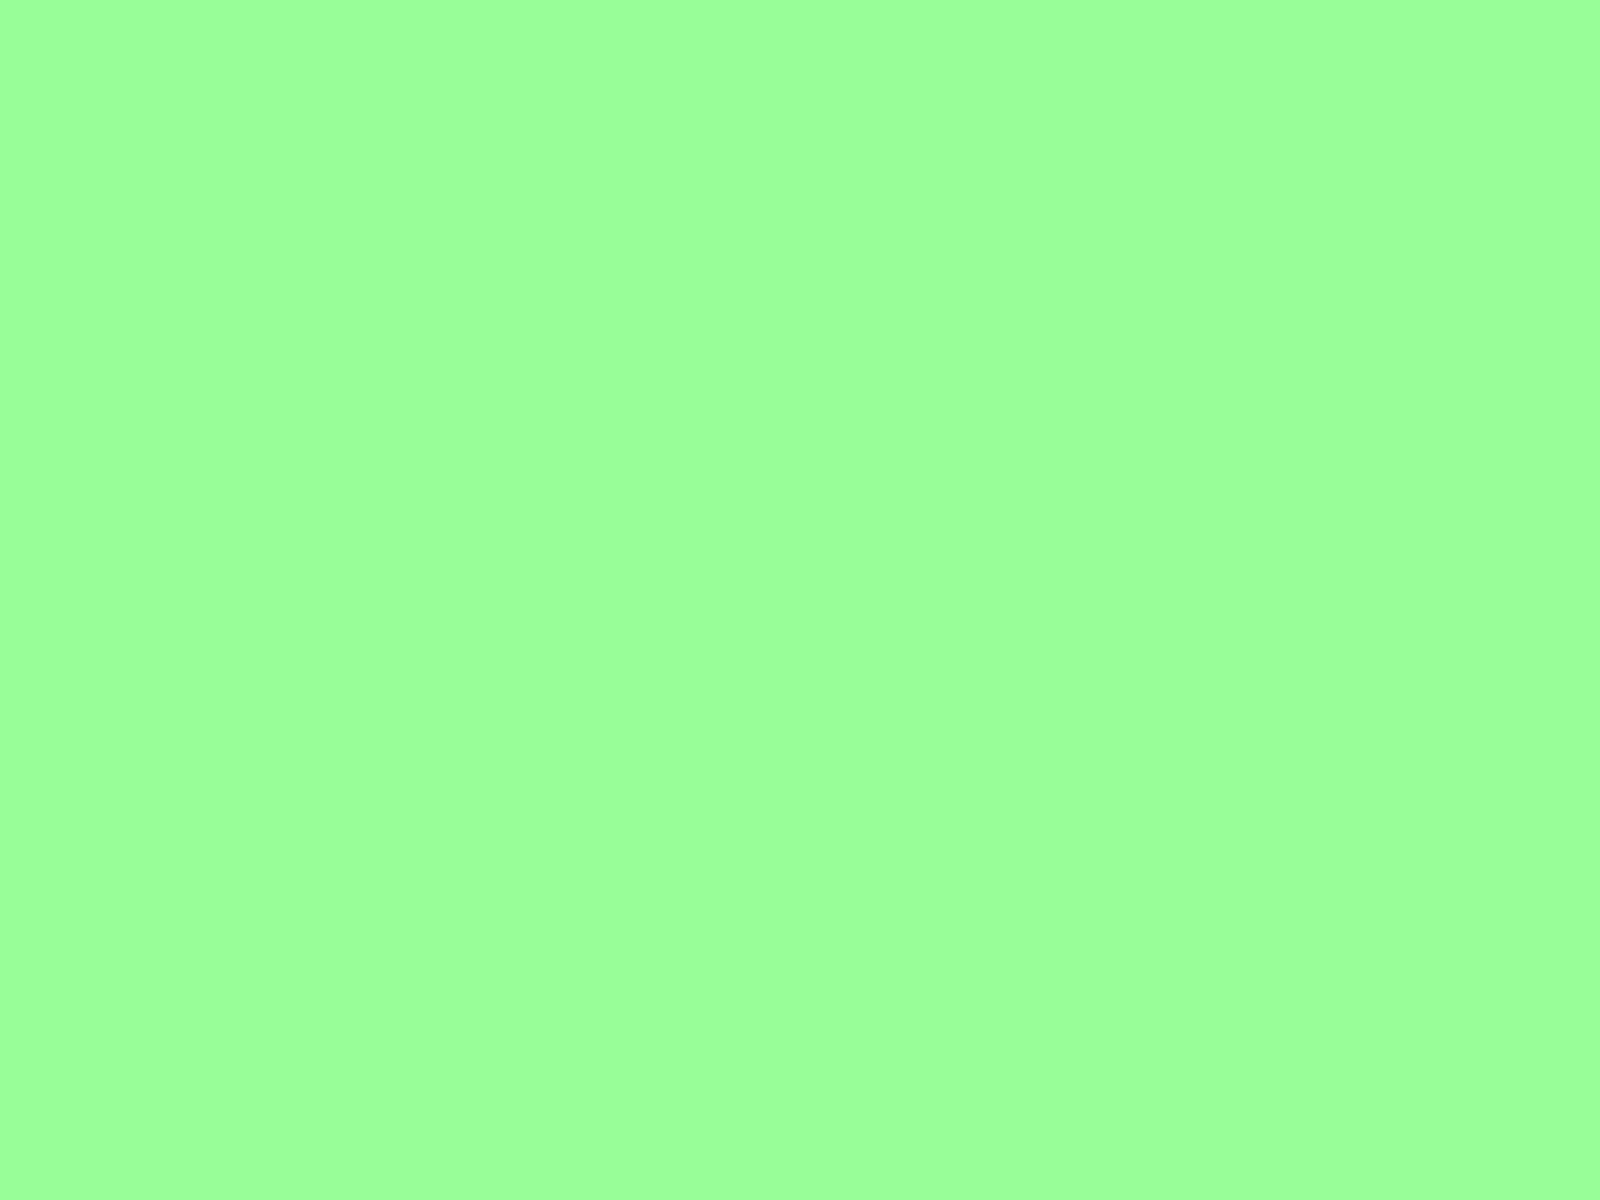 1600x1200 Mint Green Solid Color Background